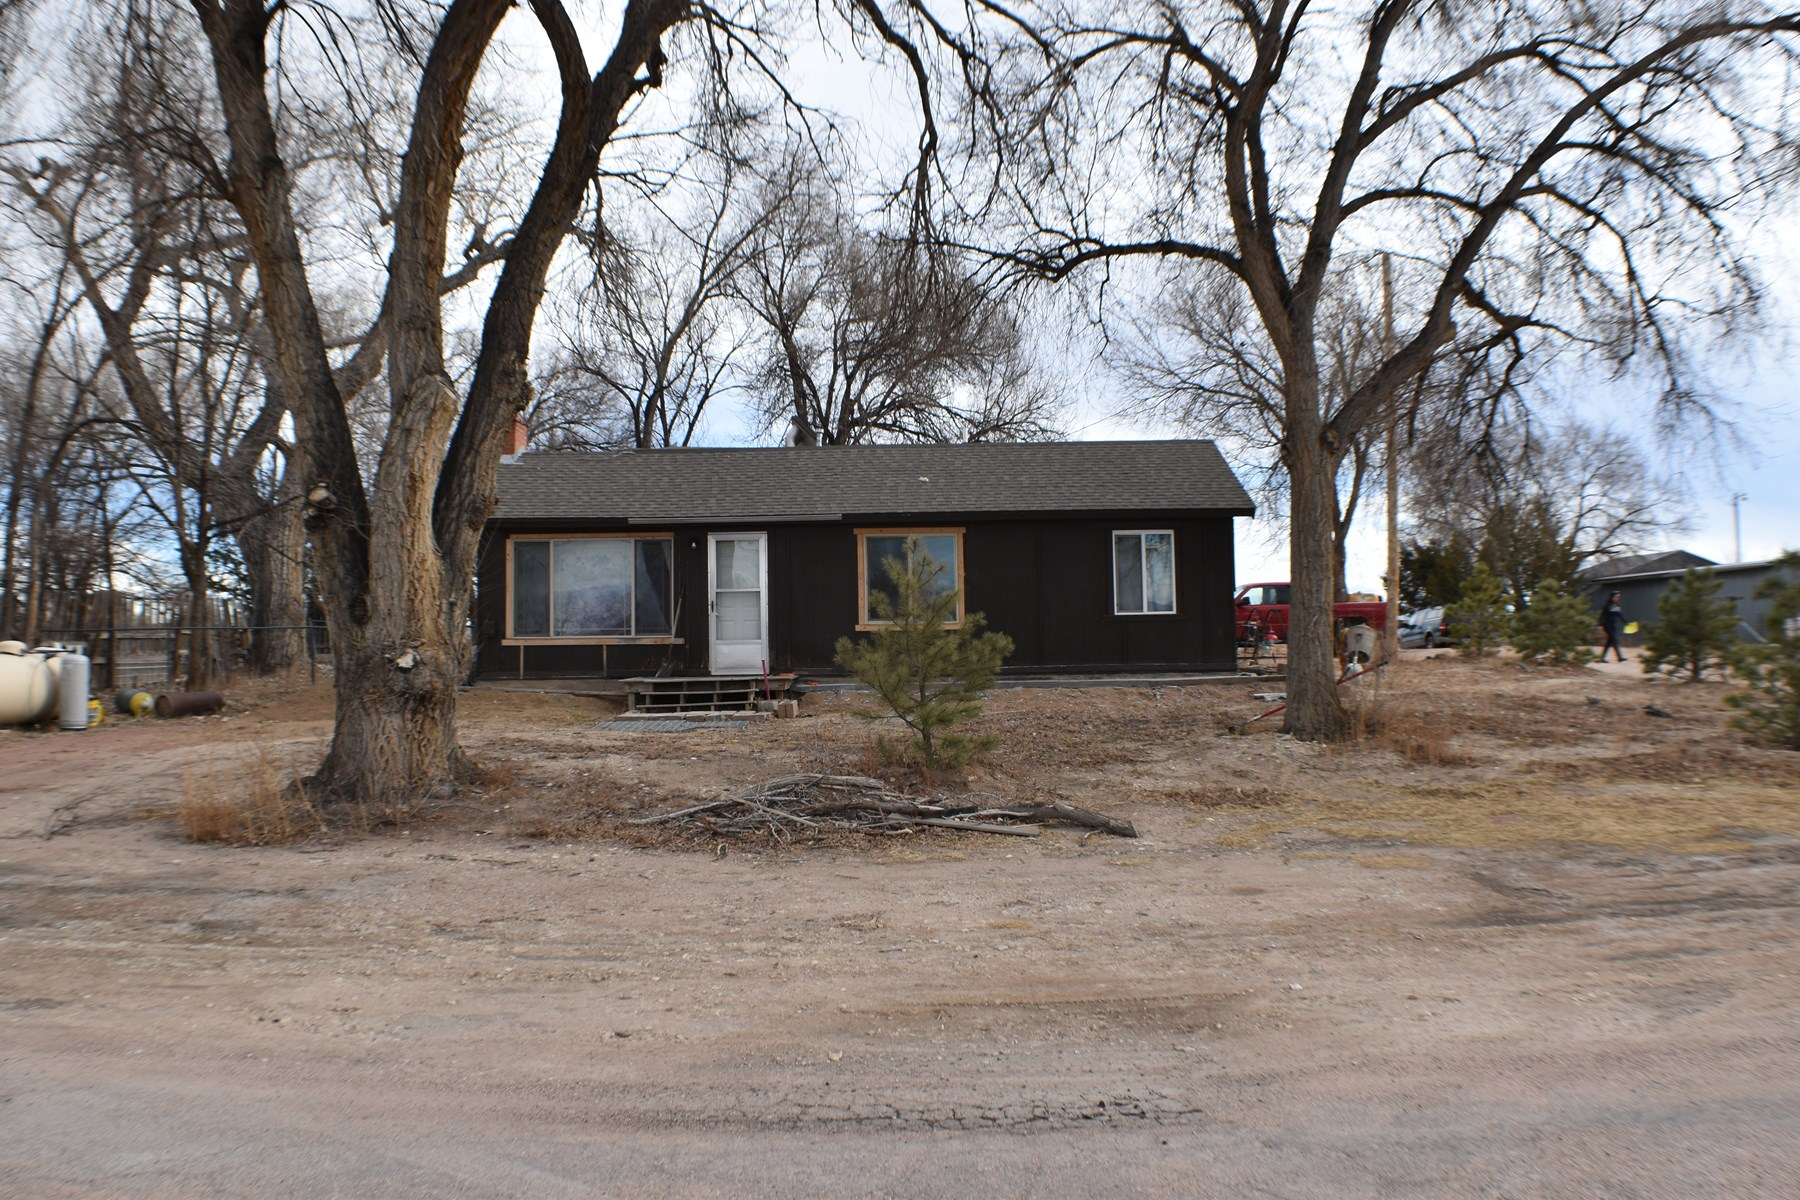 Home for Sale with 2 acres in Penrose Colorad!